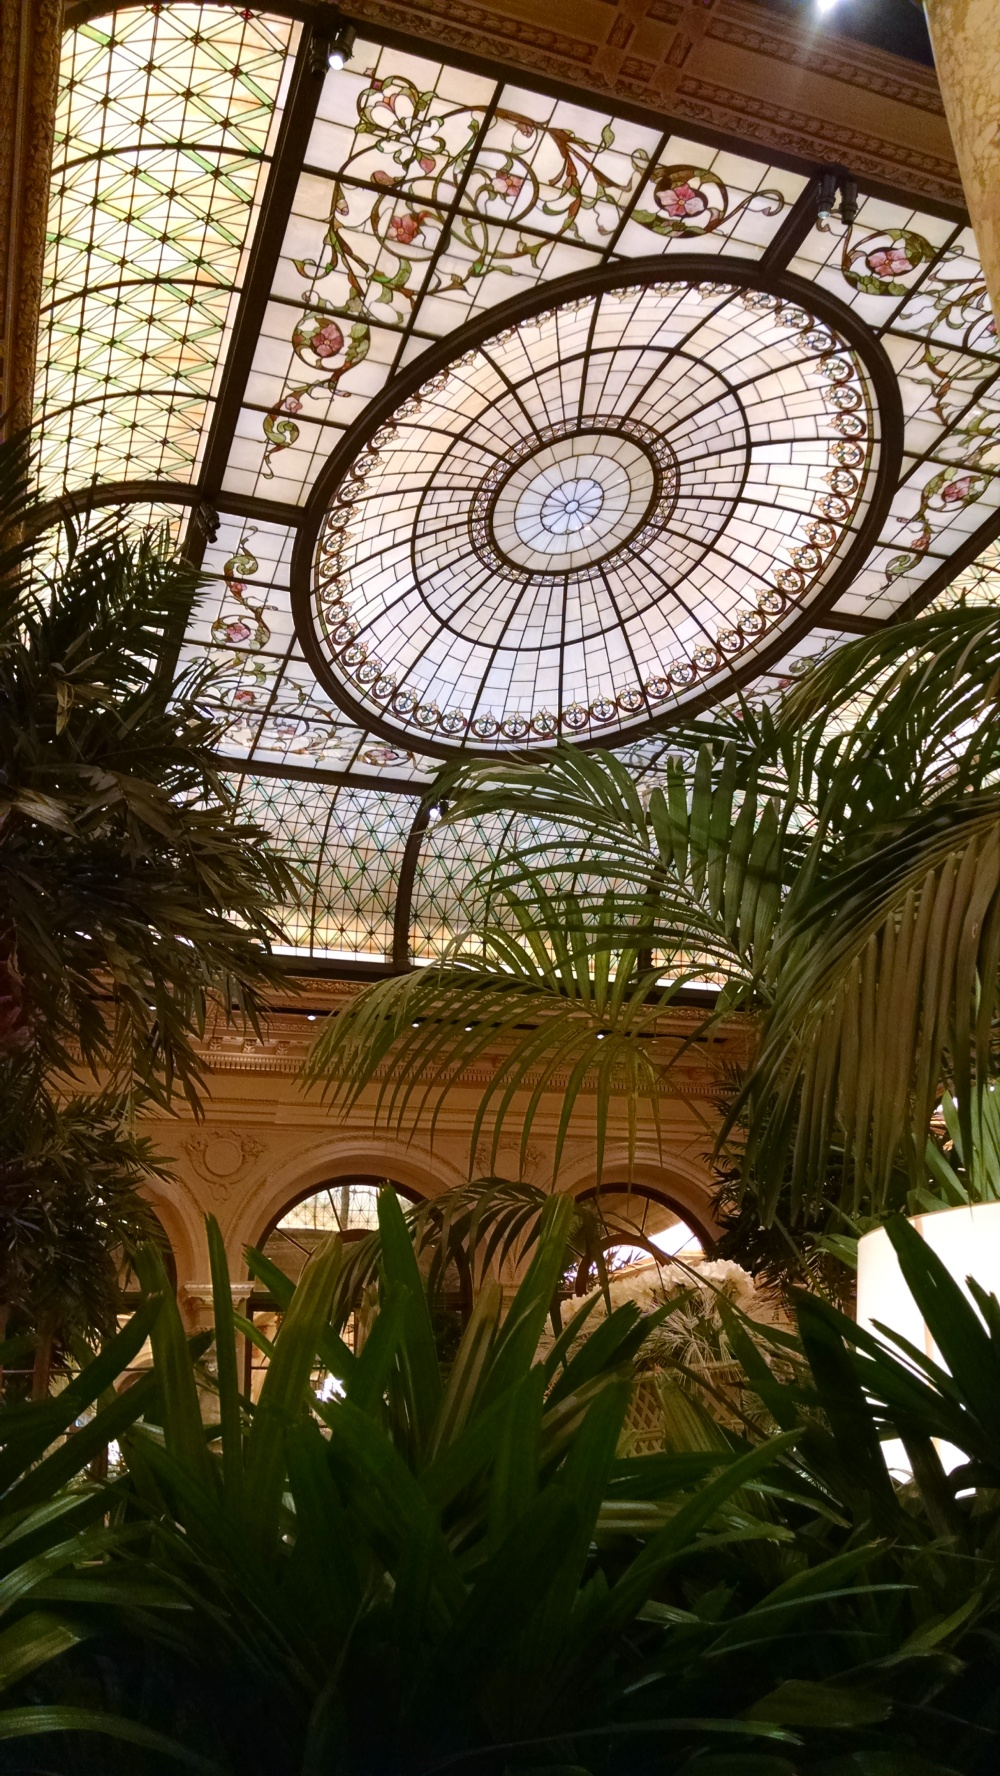 They don't call it The Palm Court for nothing - there are palm